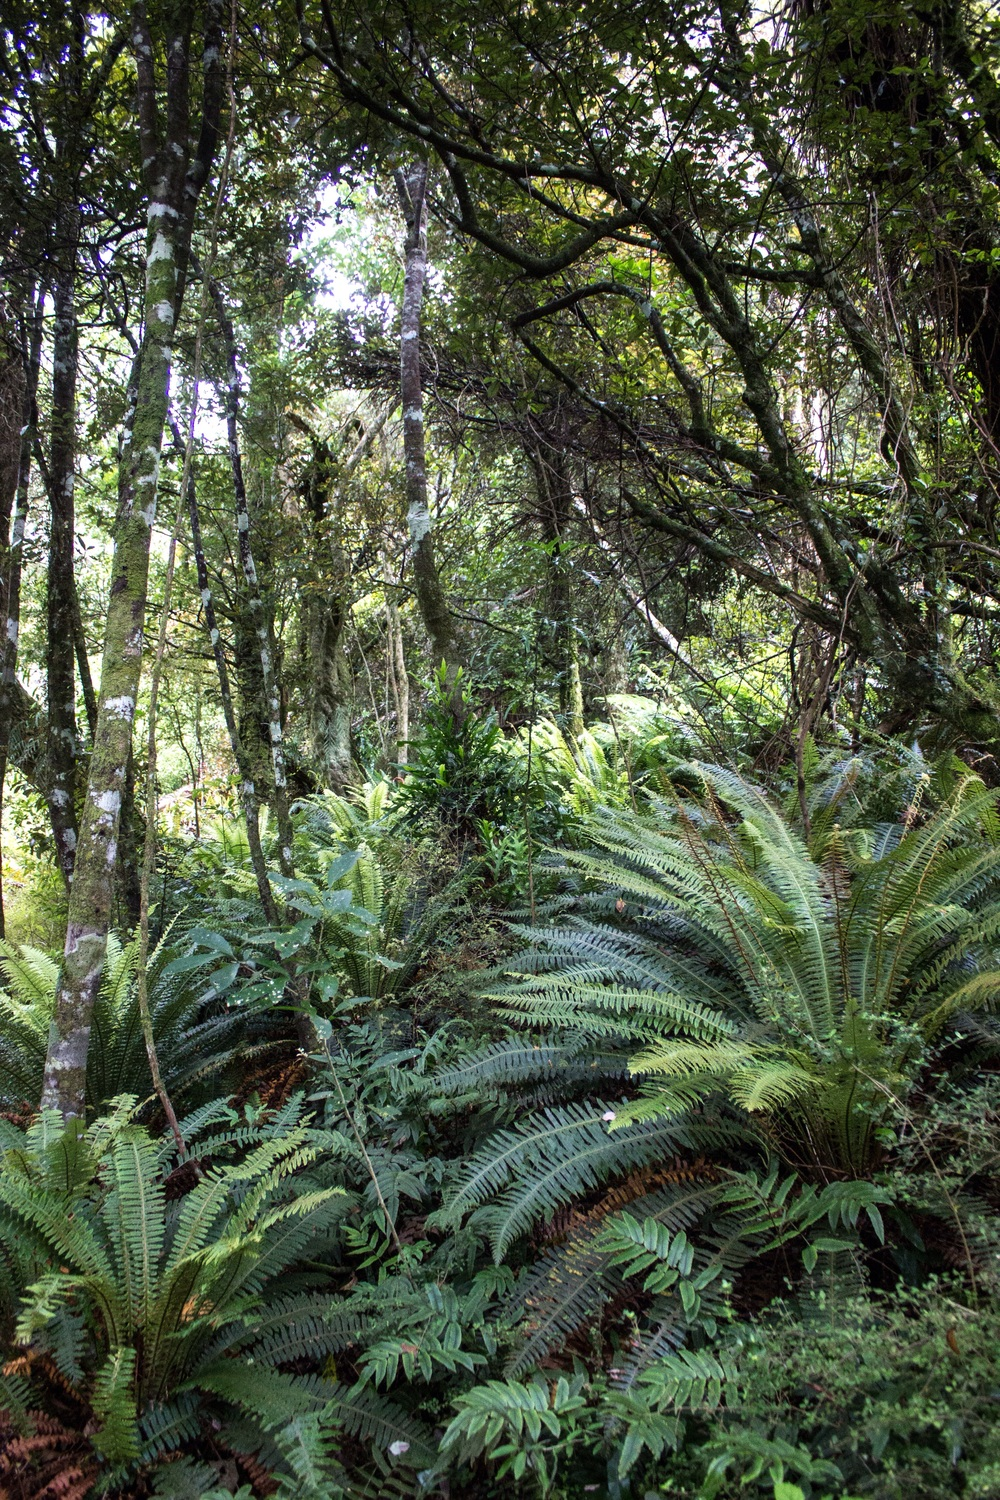 Forests reminiscent of times past. Orokonui Ecosanctuary, New Zealand.